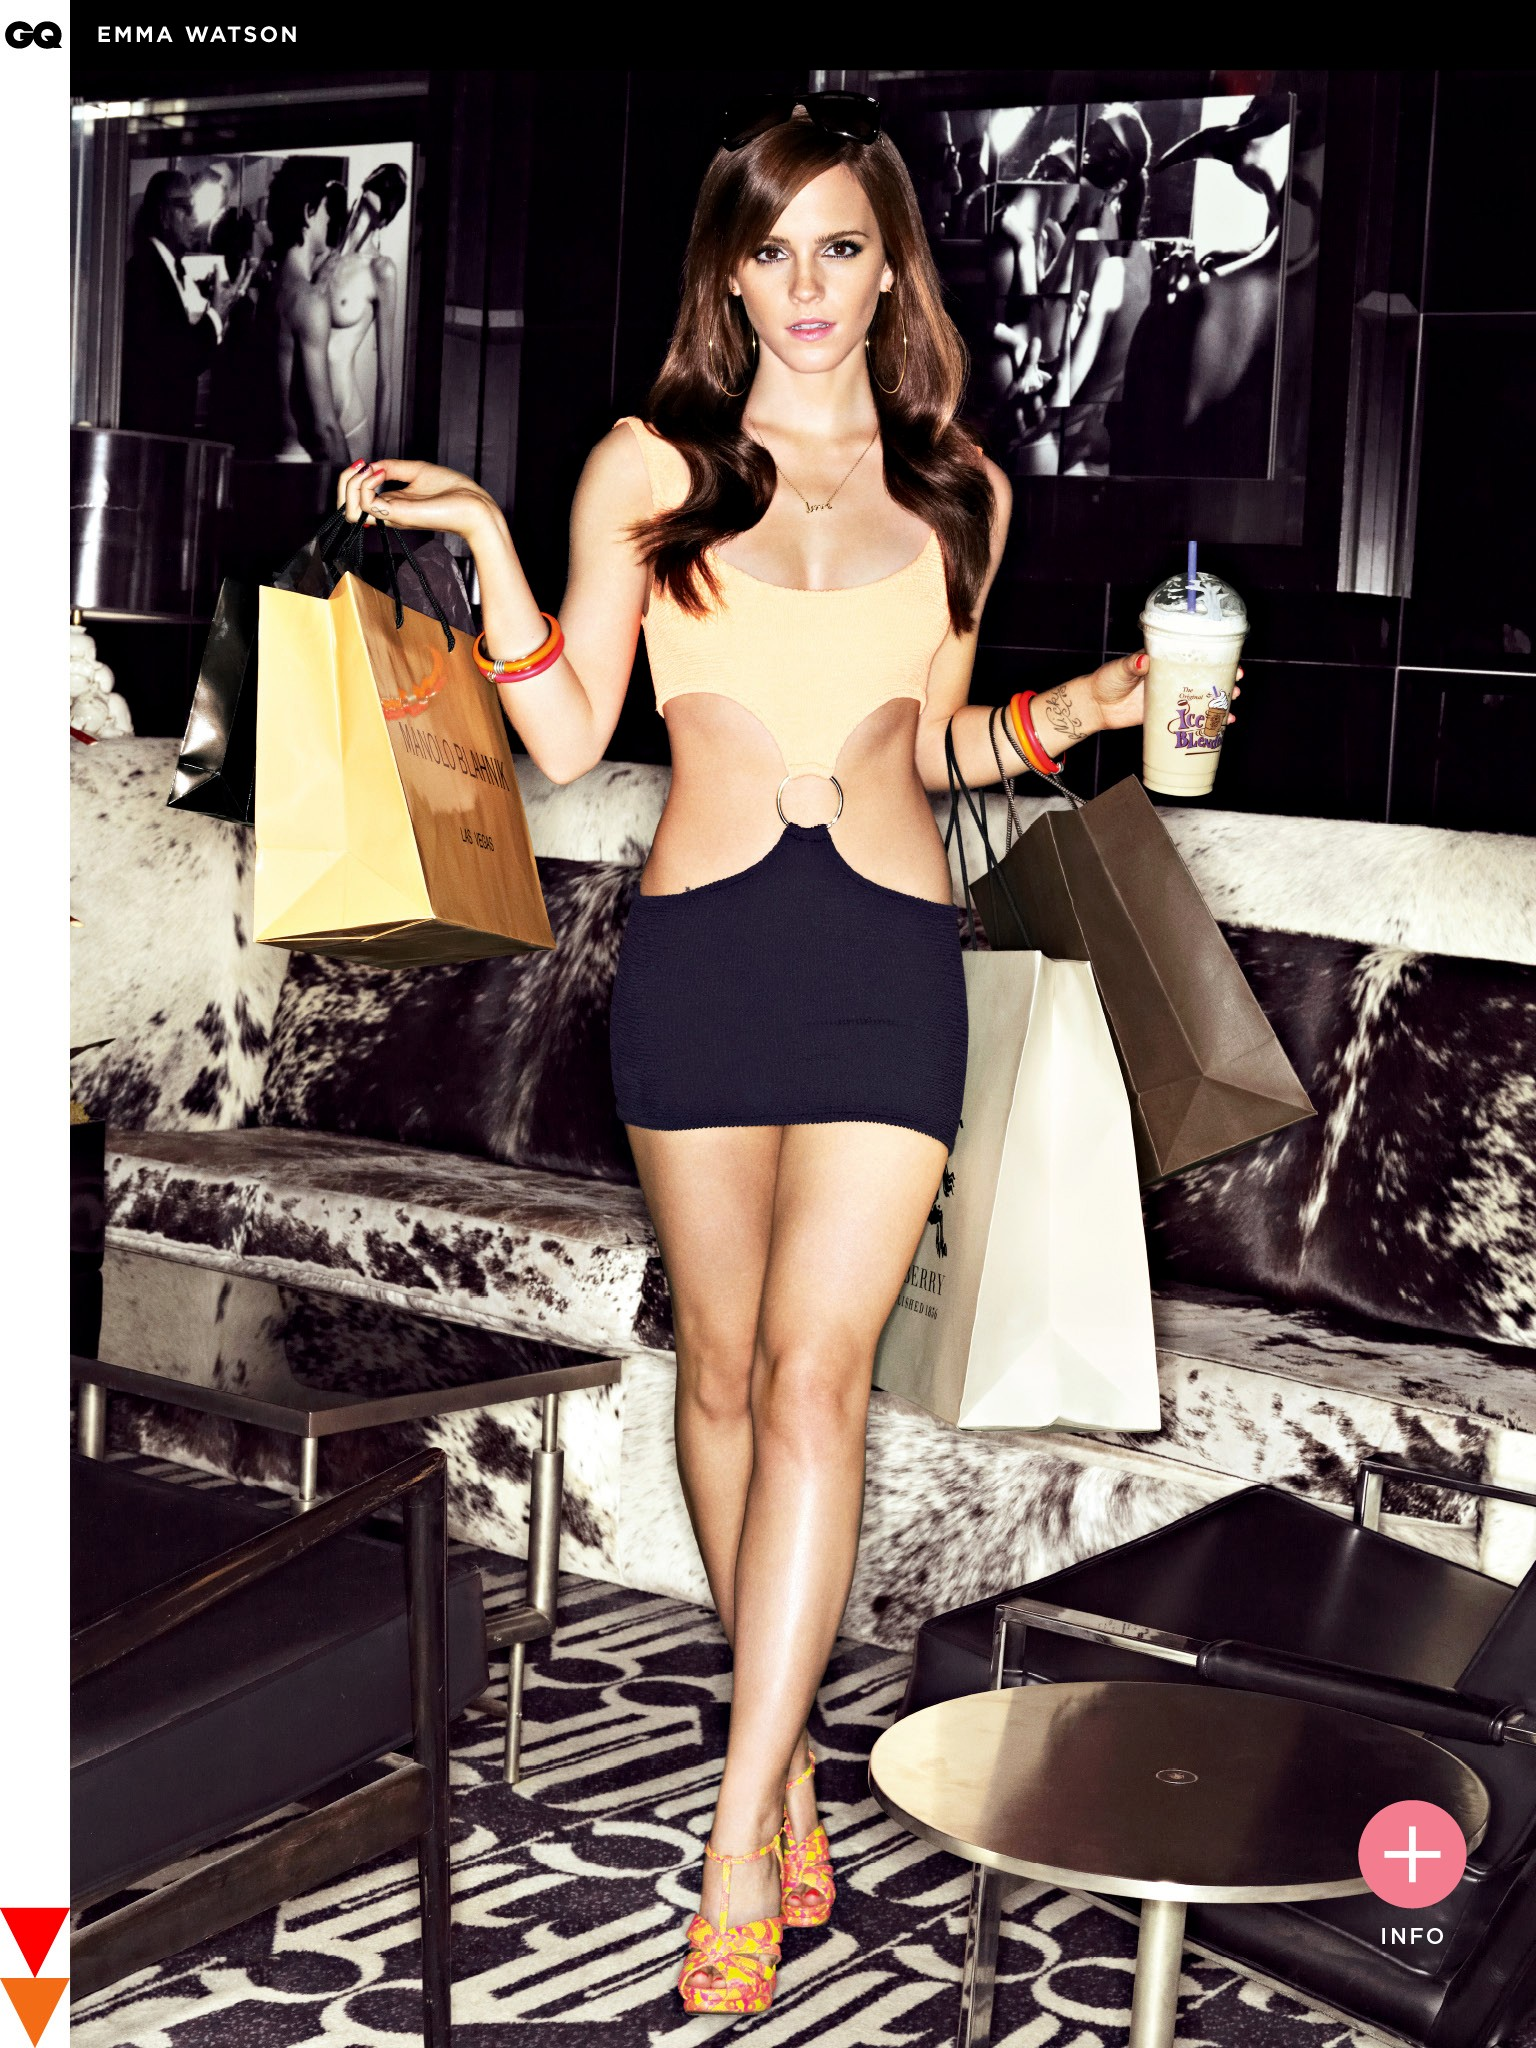 fashion_scans_remastered_emma_watson_gq_uk_may_2013_scanned_by_vampirehorde_hq_3.jpg